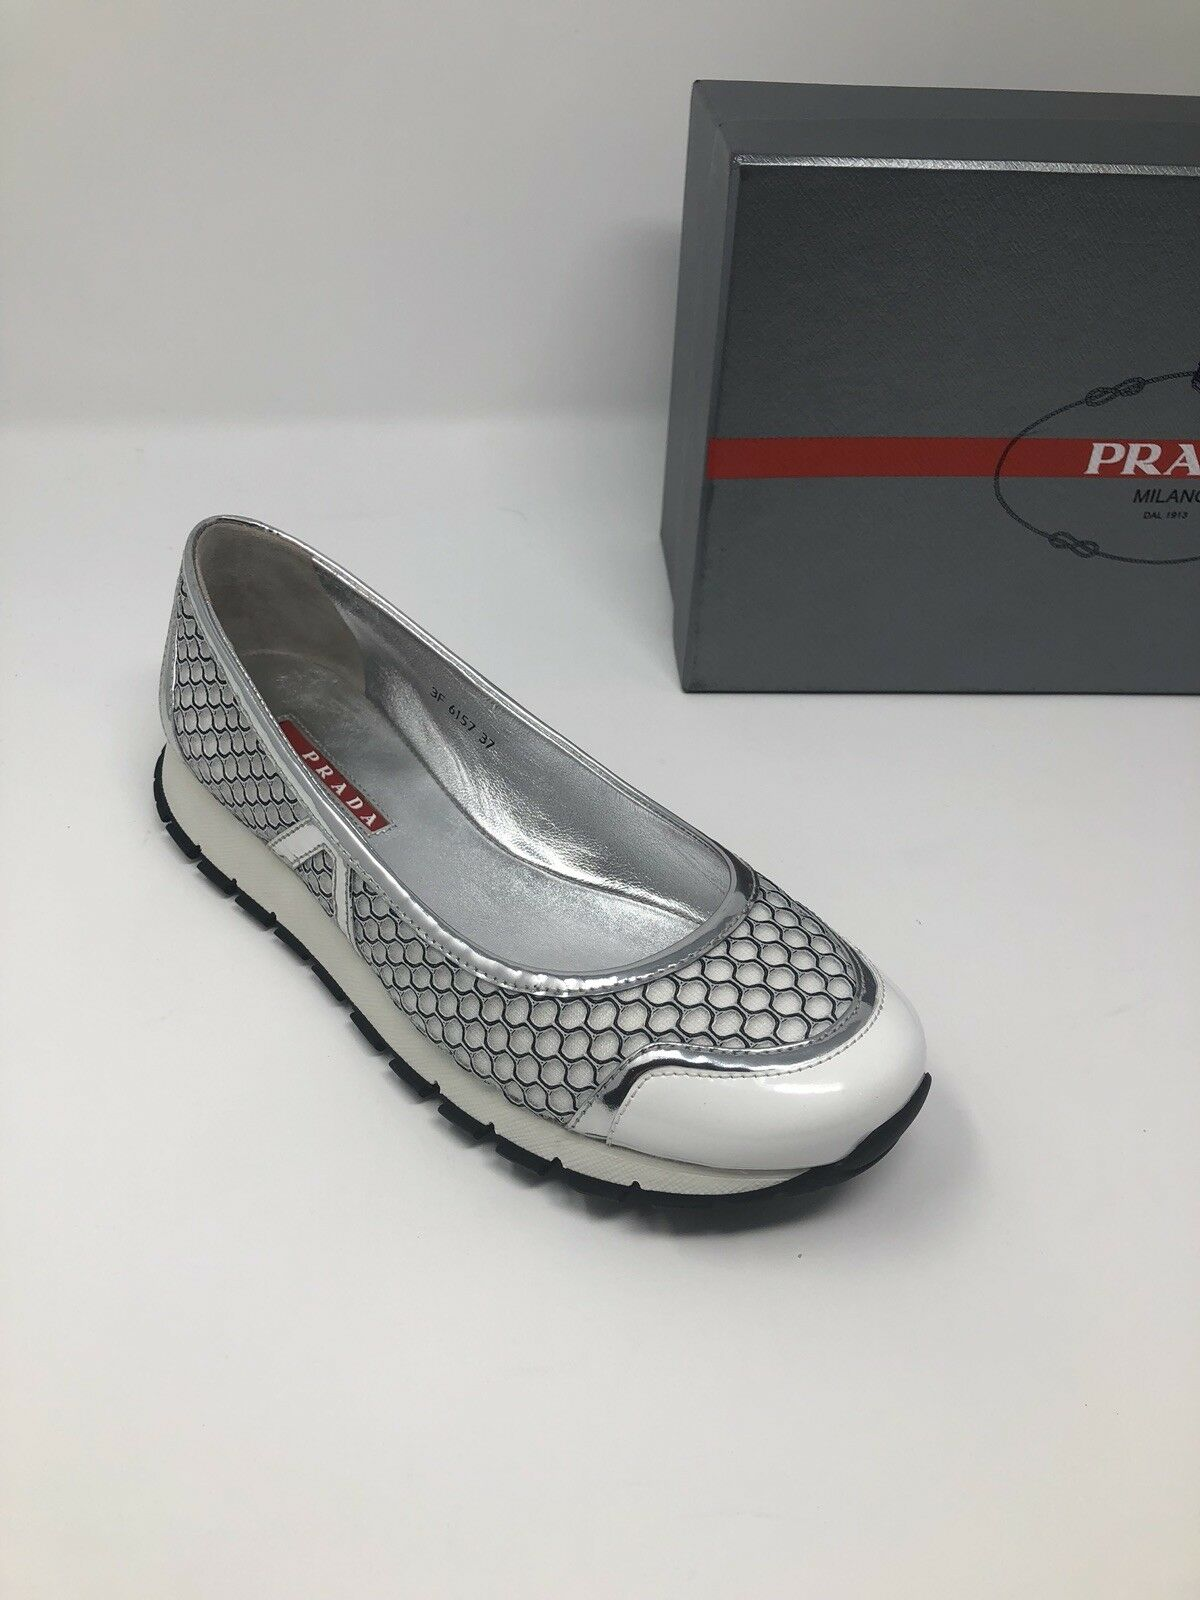 750 New PRADA Womens shoes Ladies White Silver Sneakers Size 6 US 36 EU